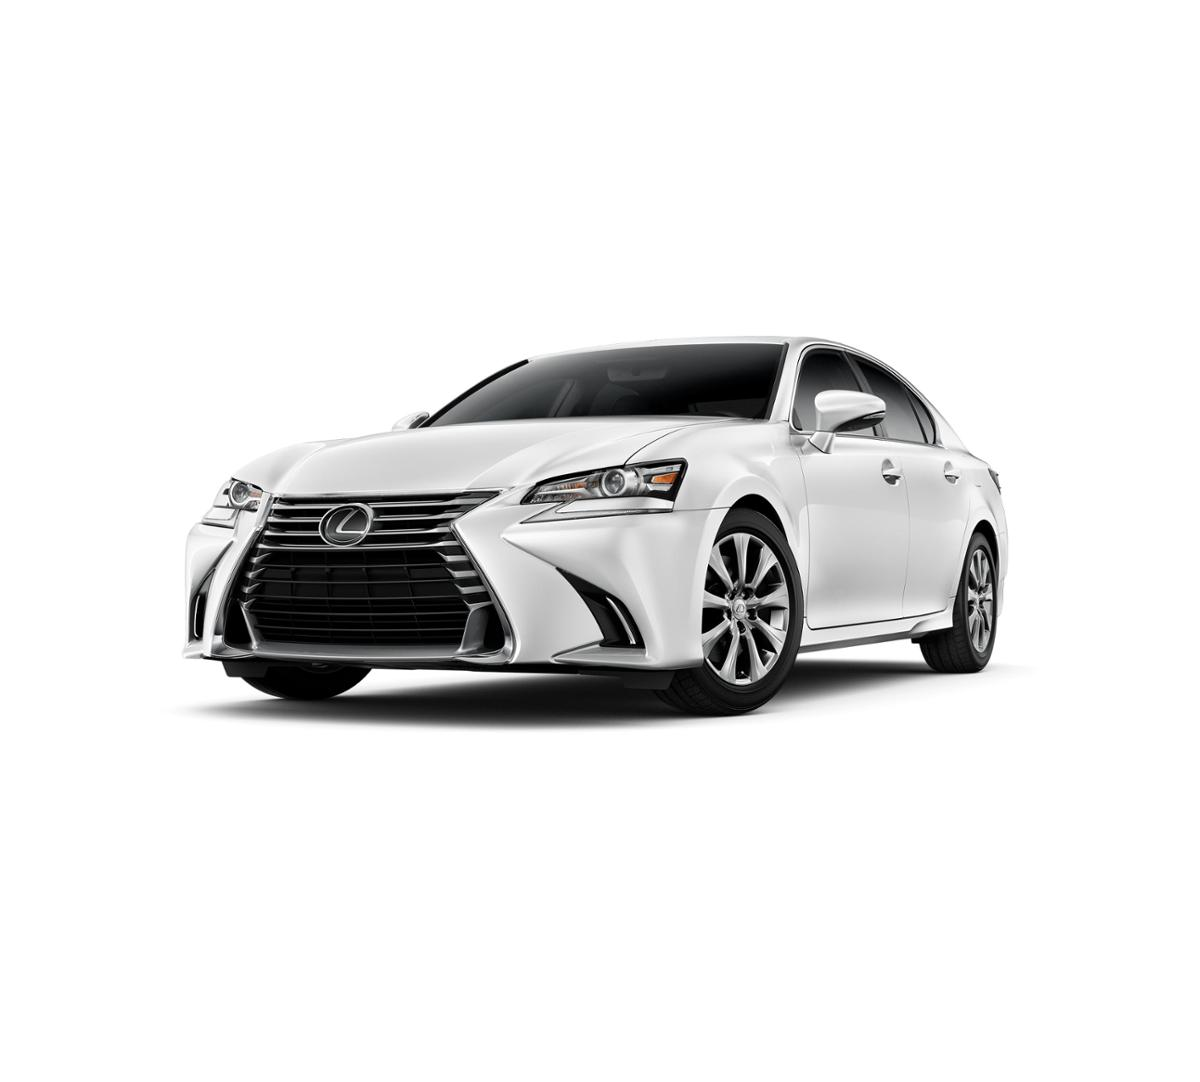 2017 Lexus GS 350 Vehicle Photo in Santa Monica, CA 90404